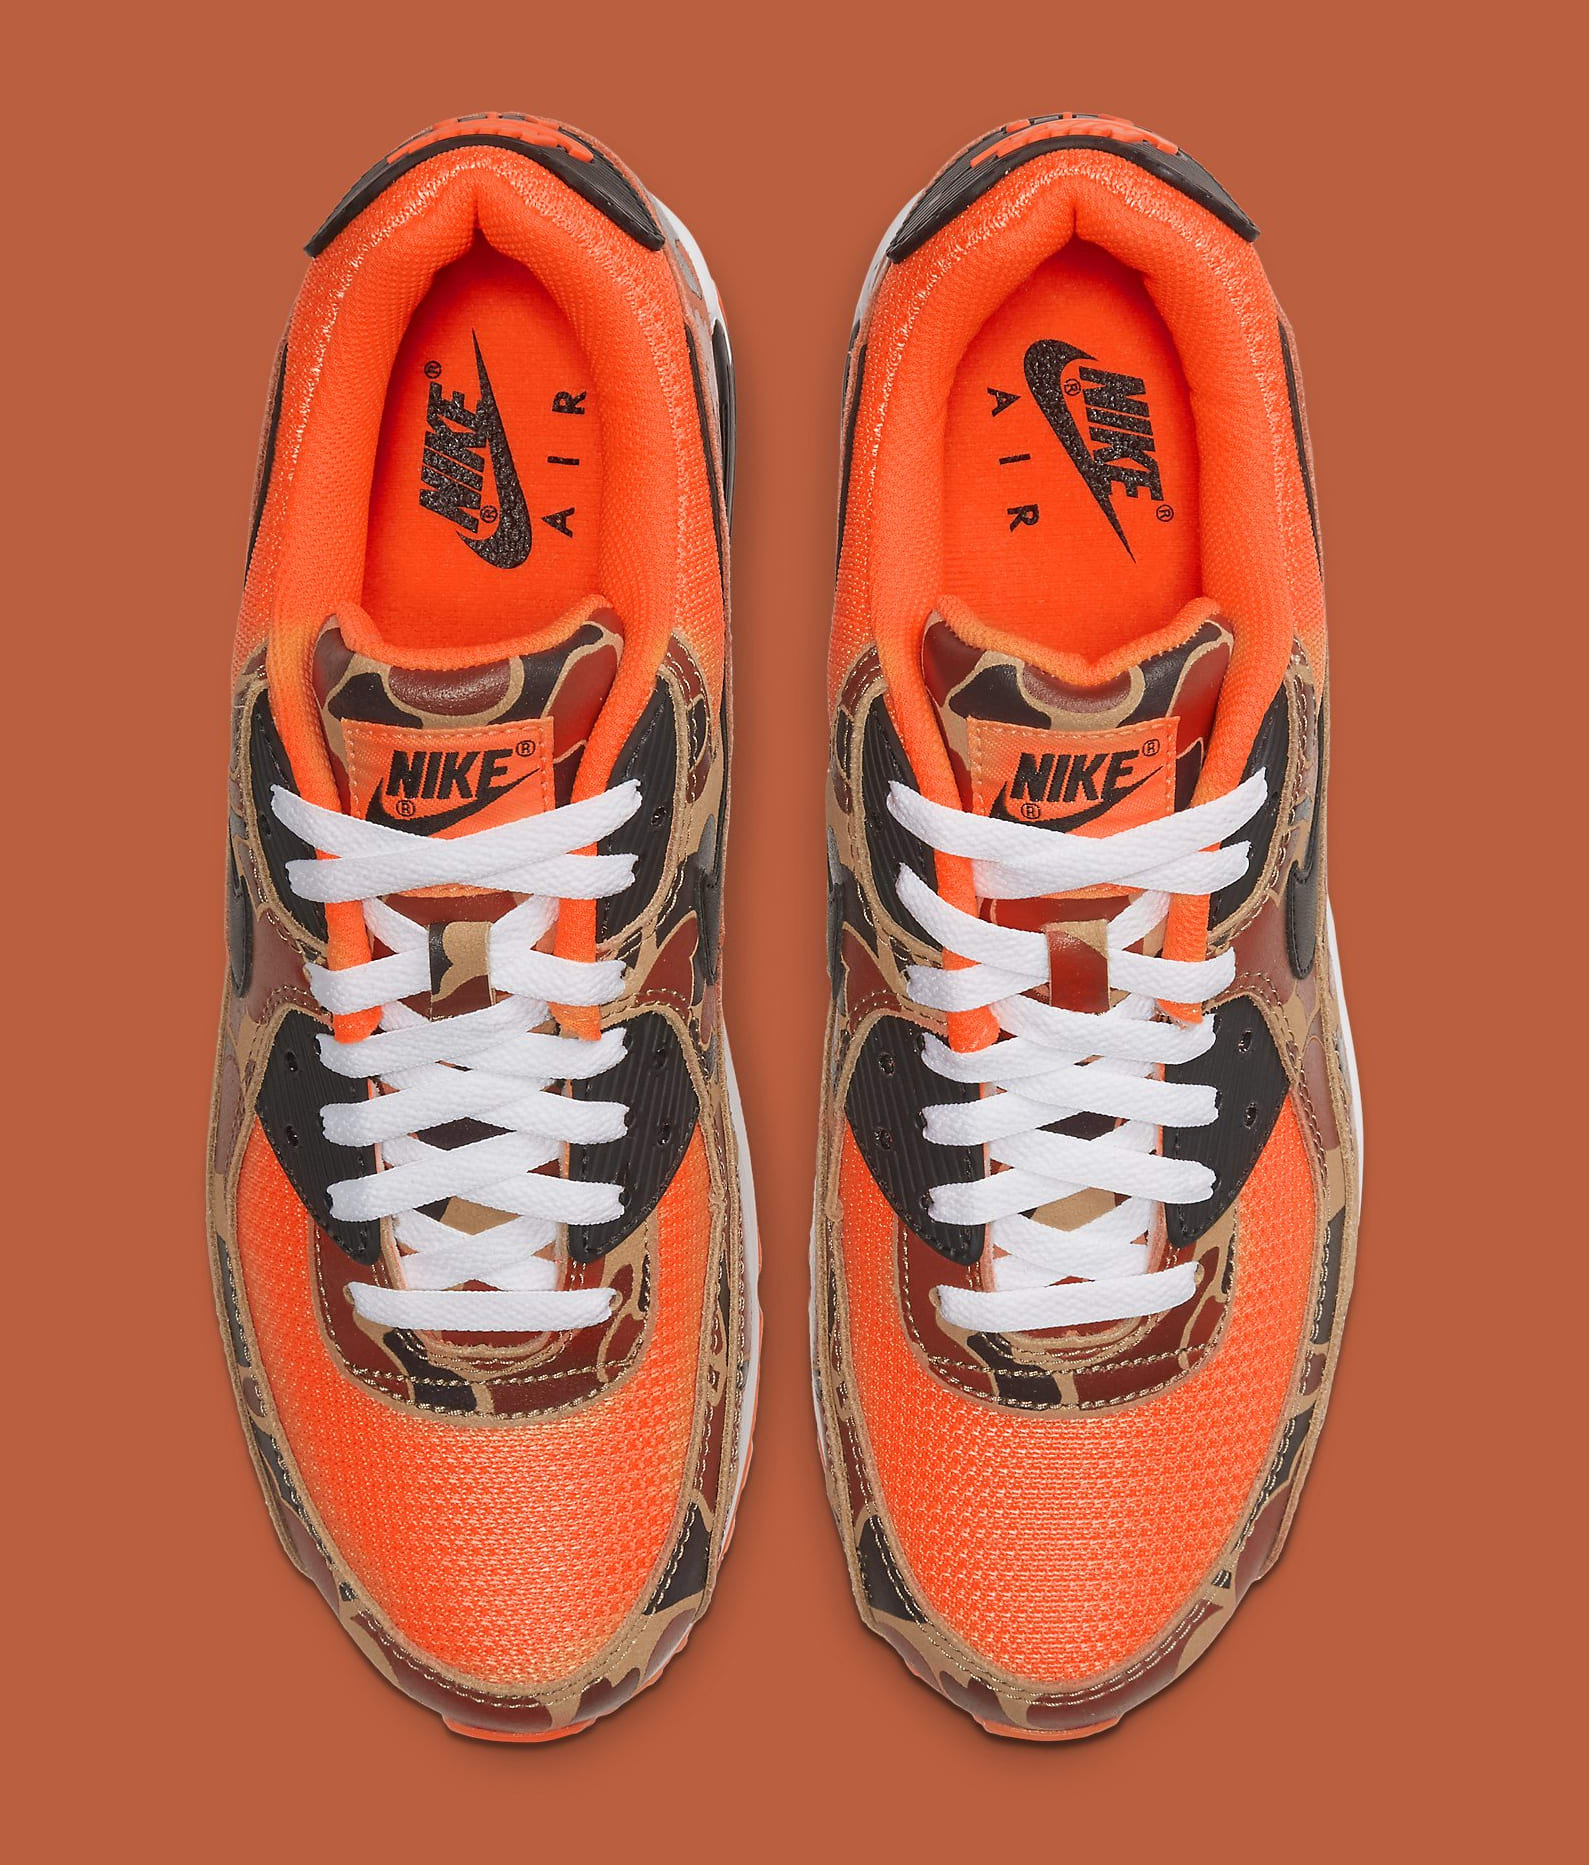 Nike Air Max 90 'Orange Camo' CW4039-800 Top